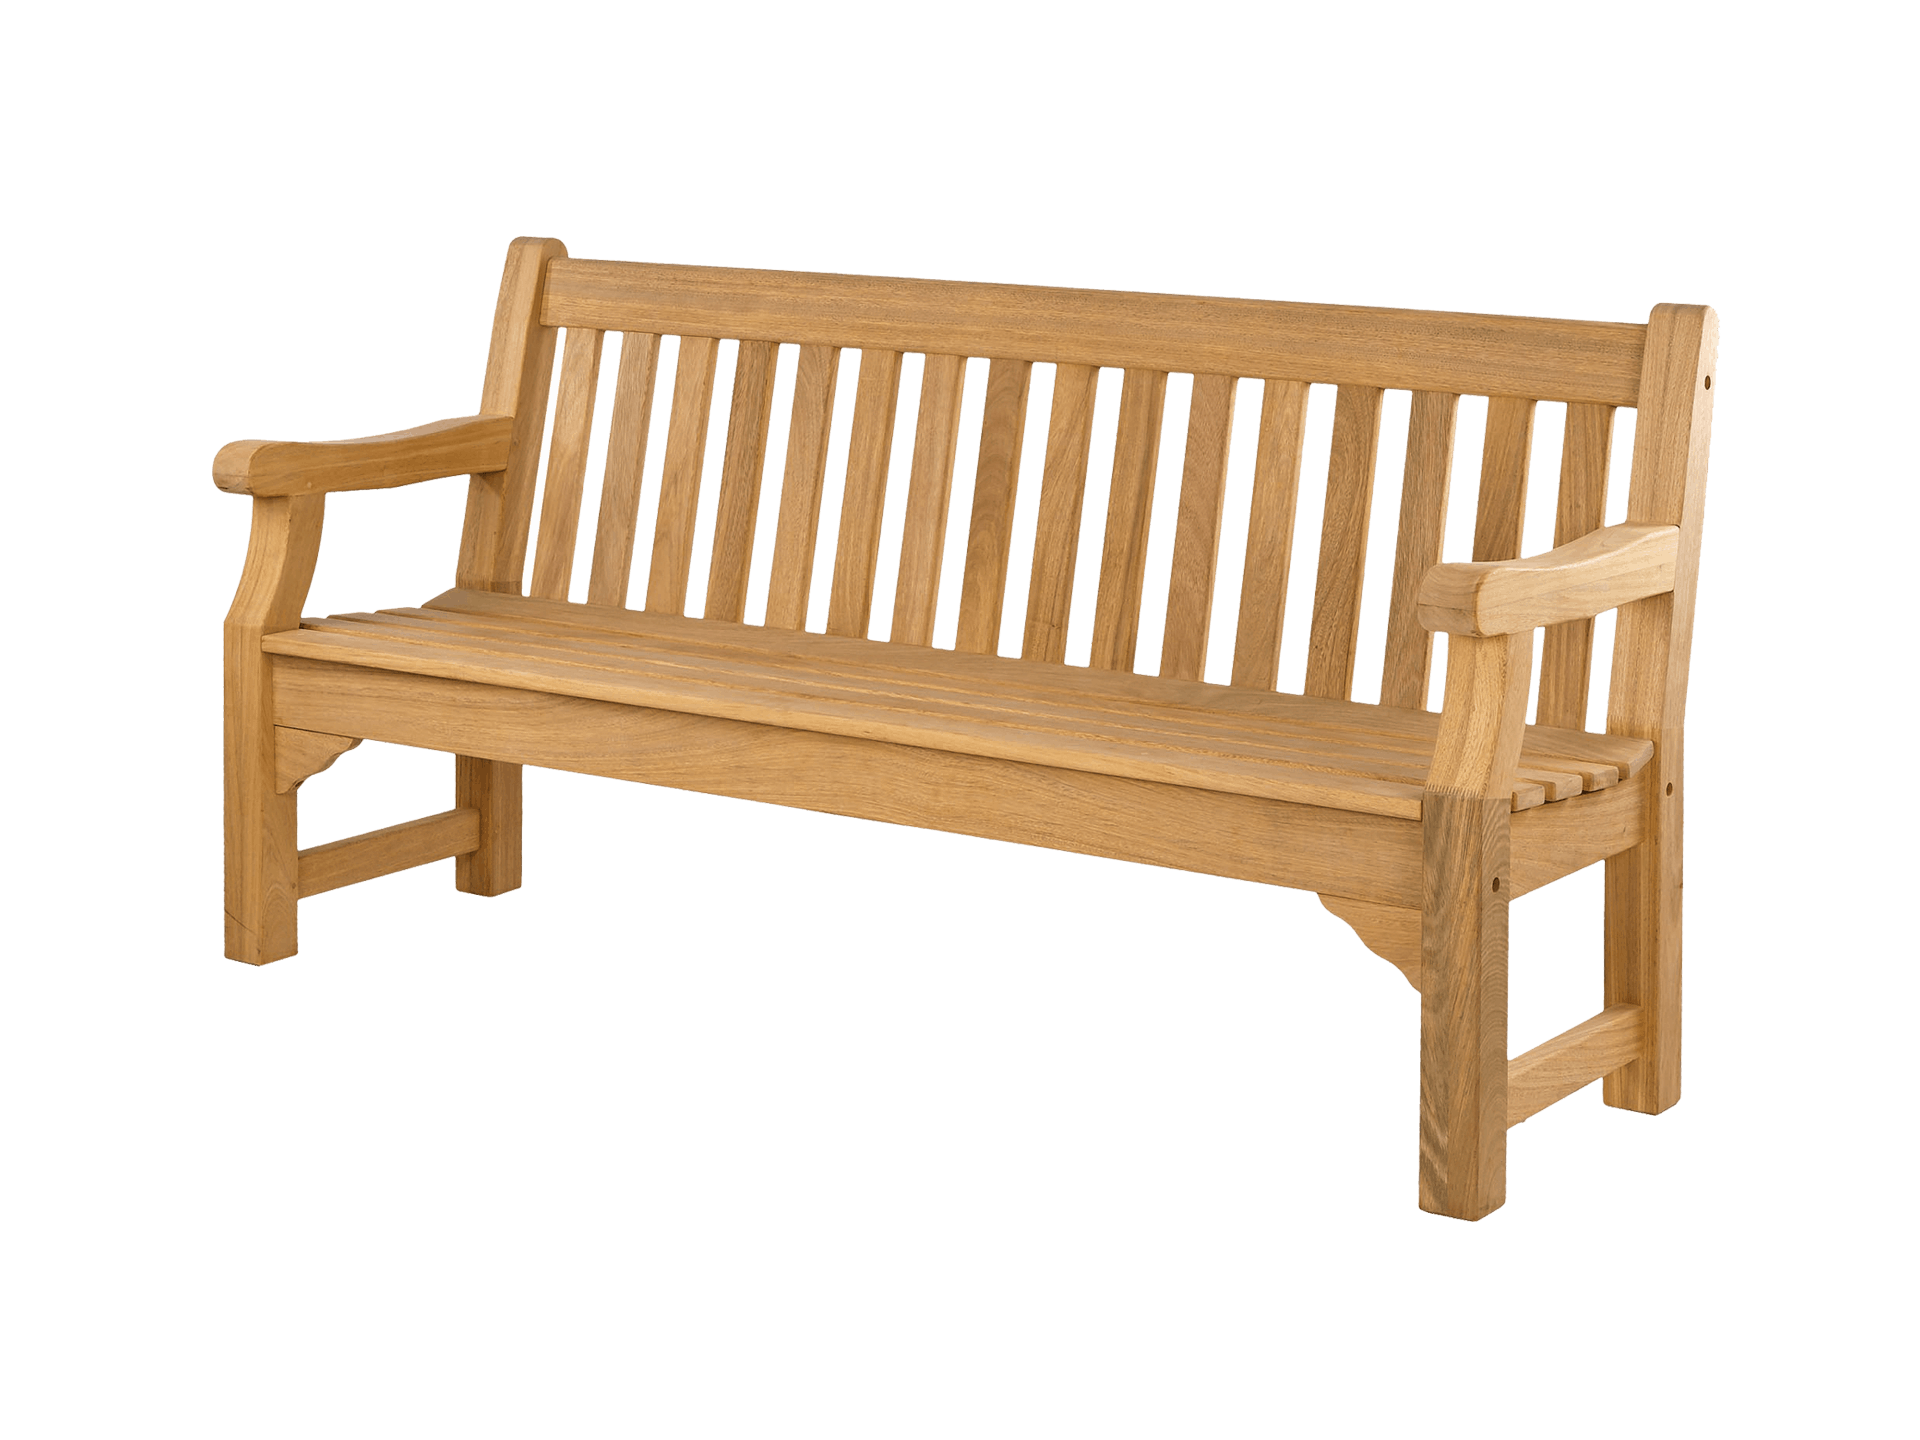 Royal Park Bench 6ft Jensen Leisure Furniture